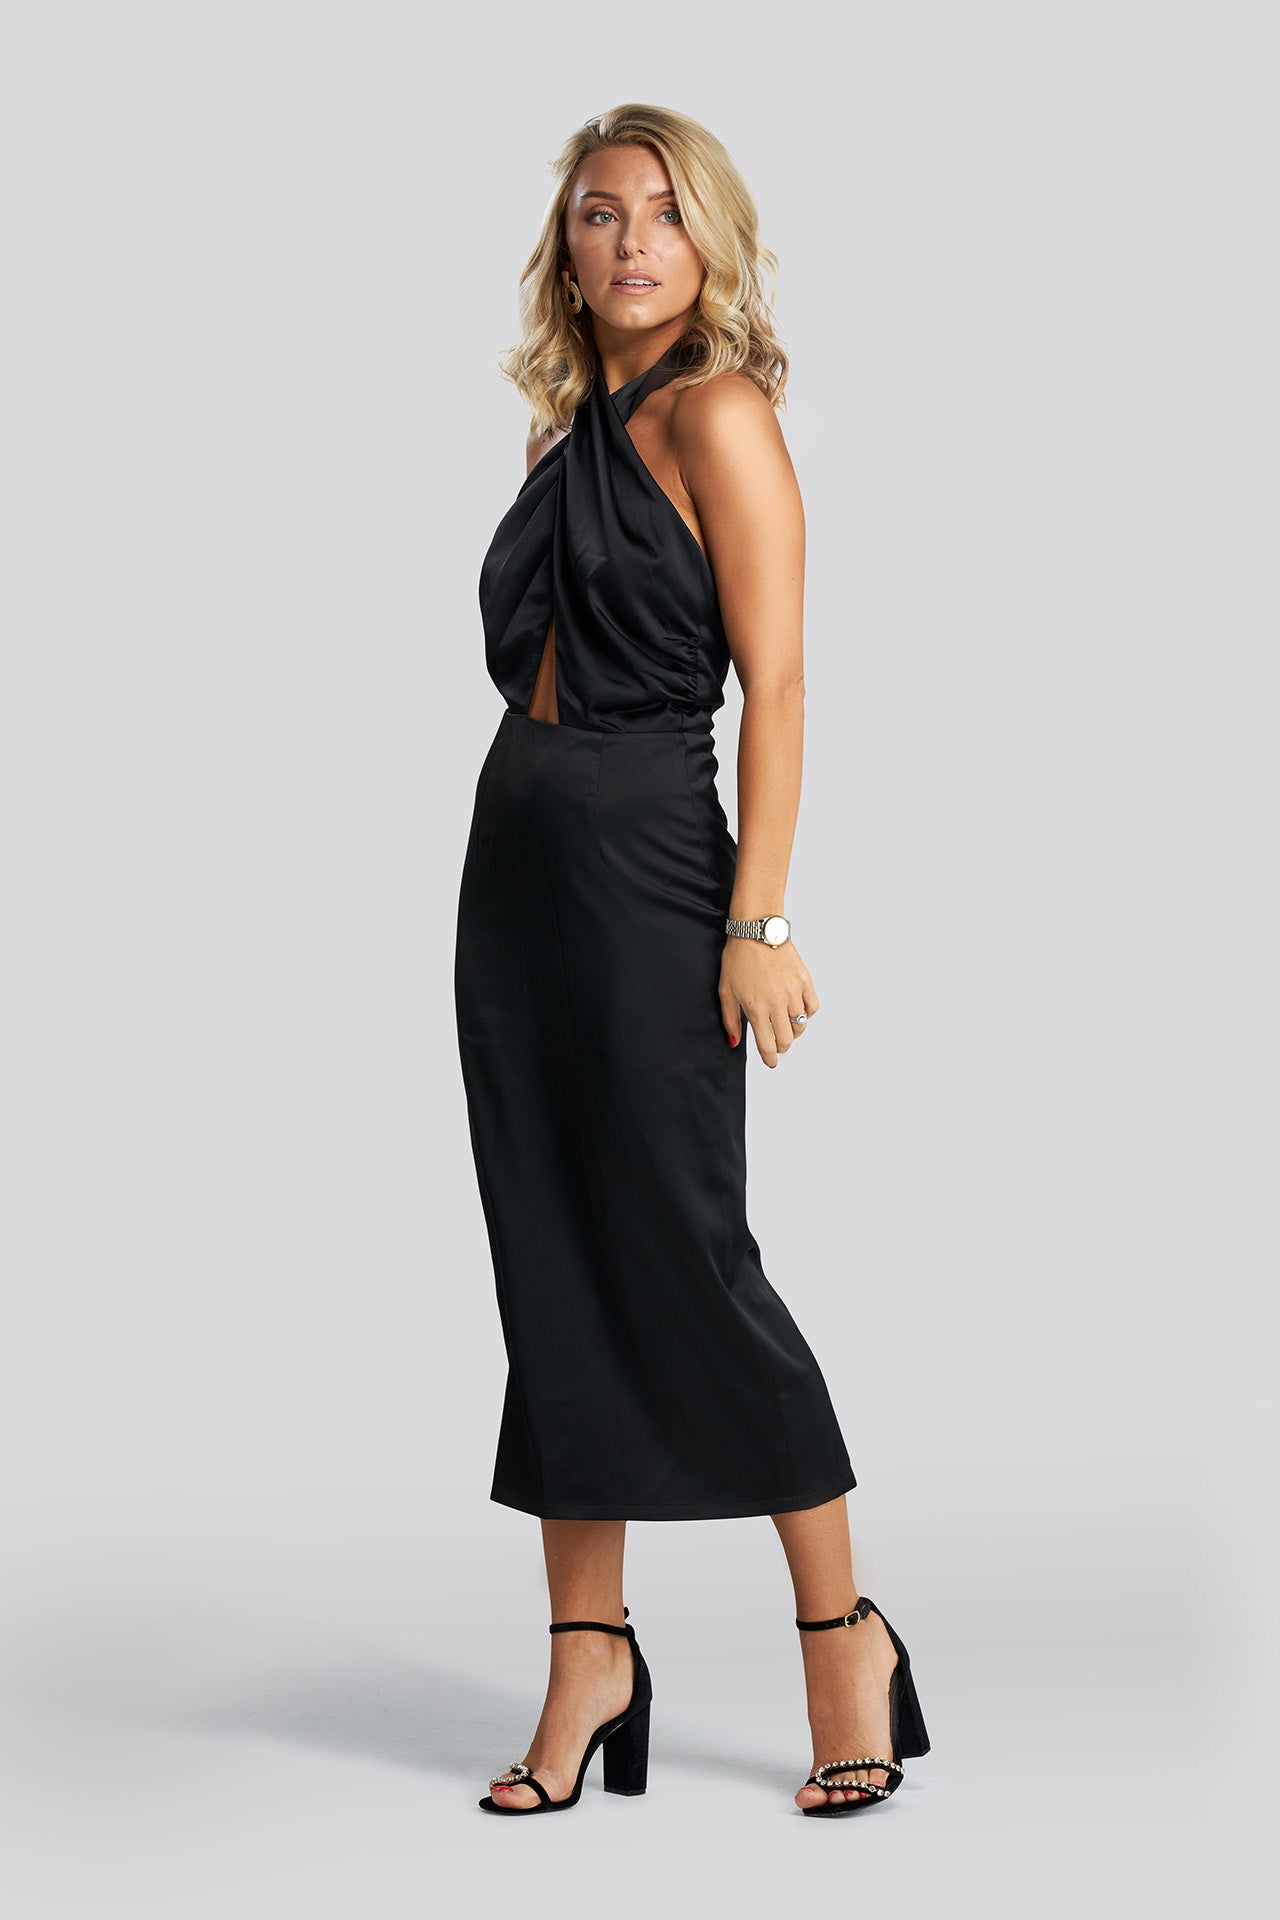 Black Tie Dress - Black